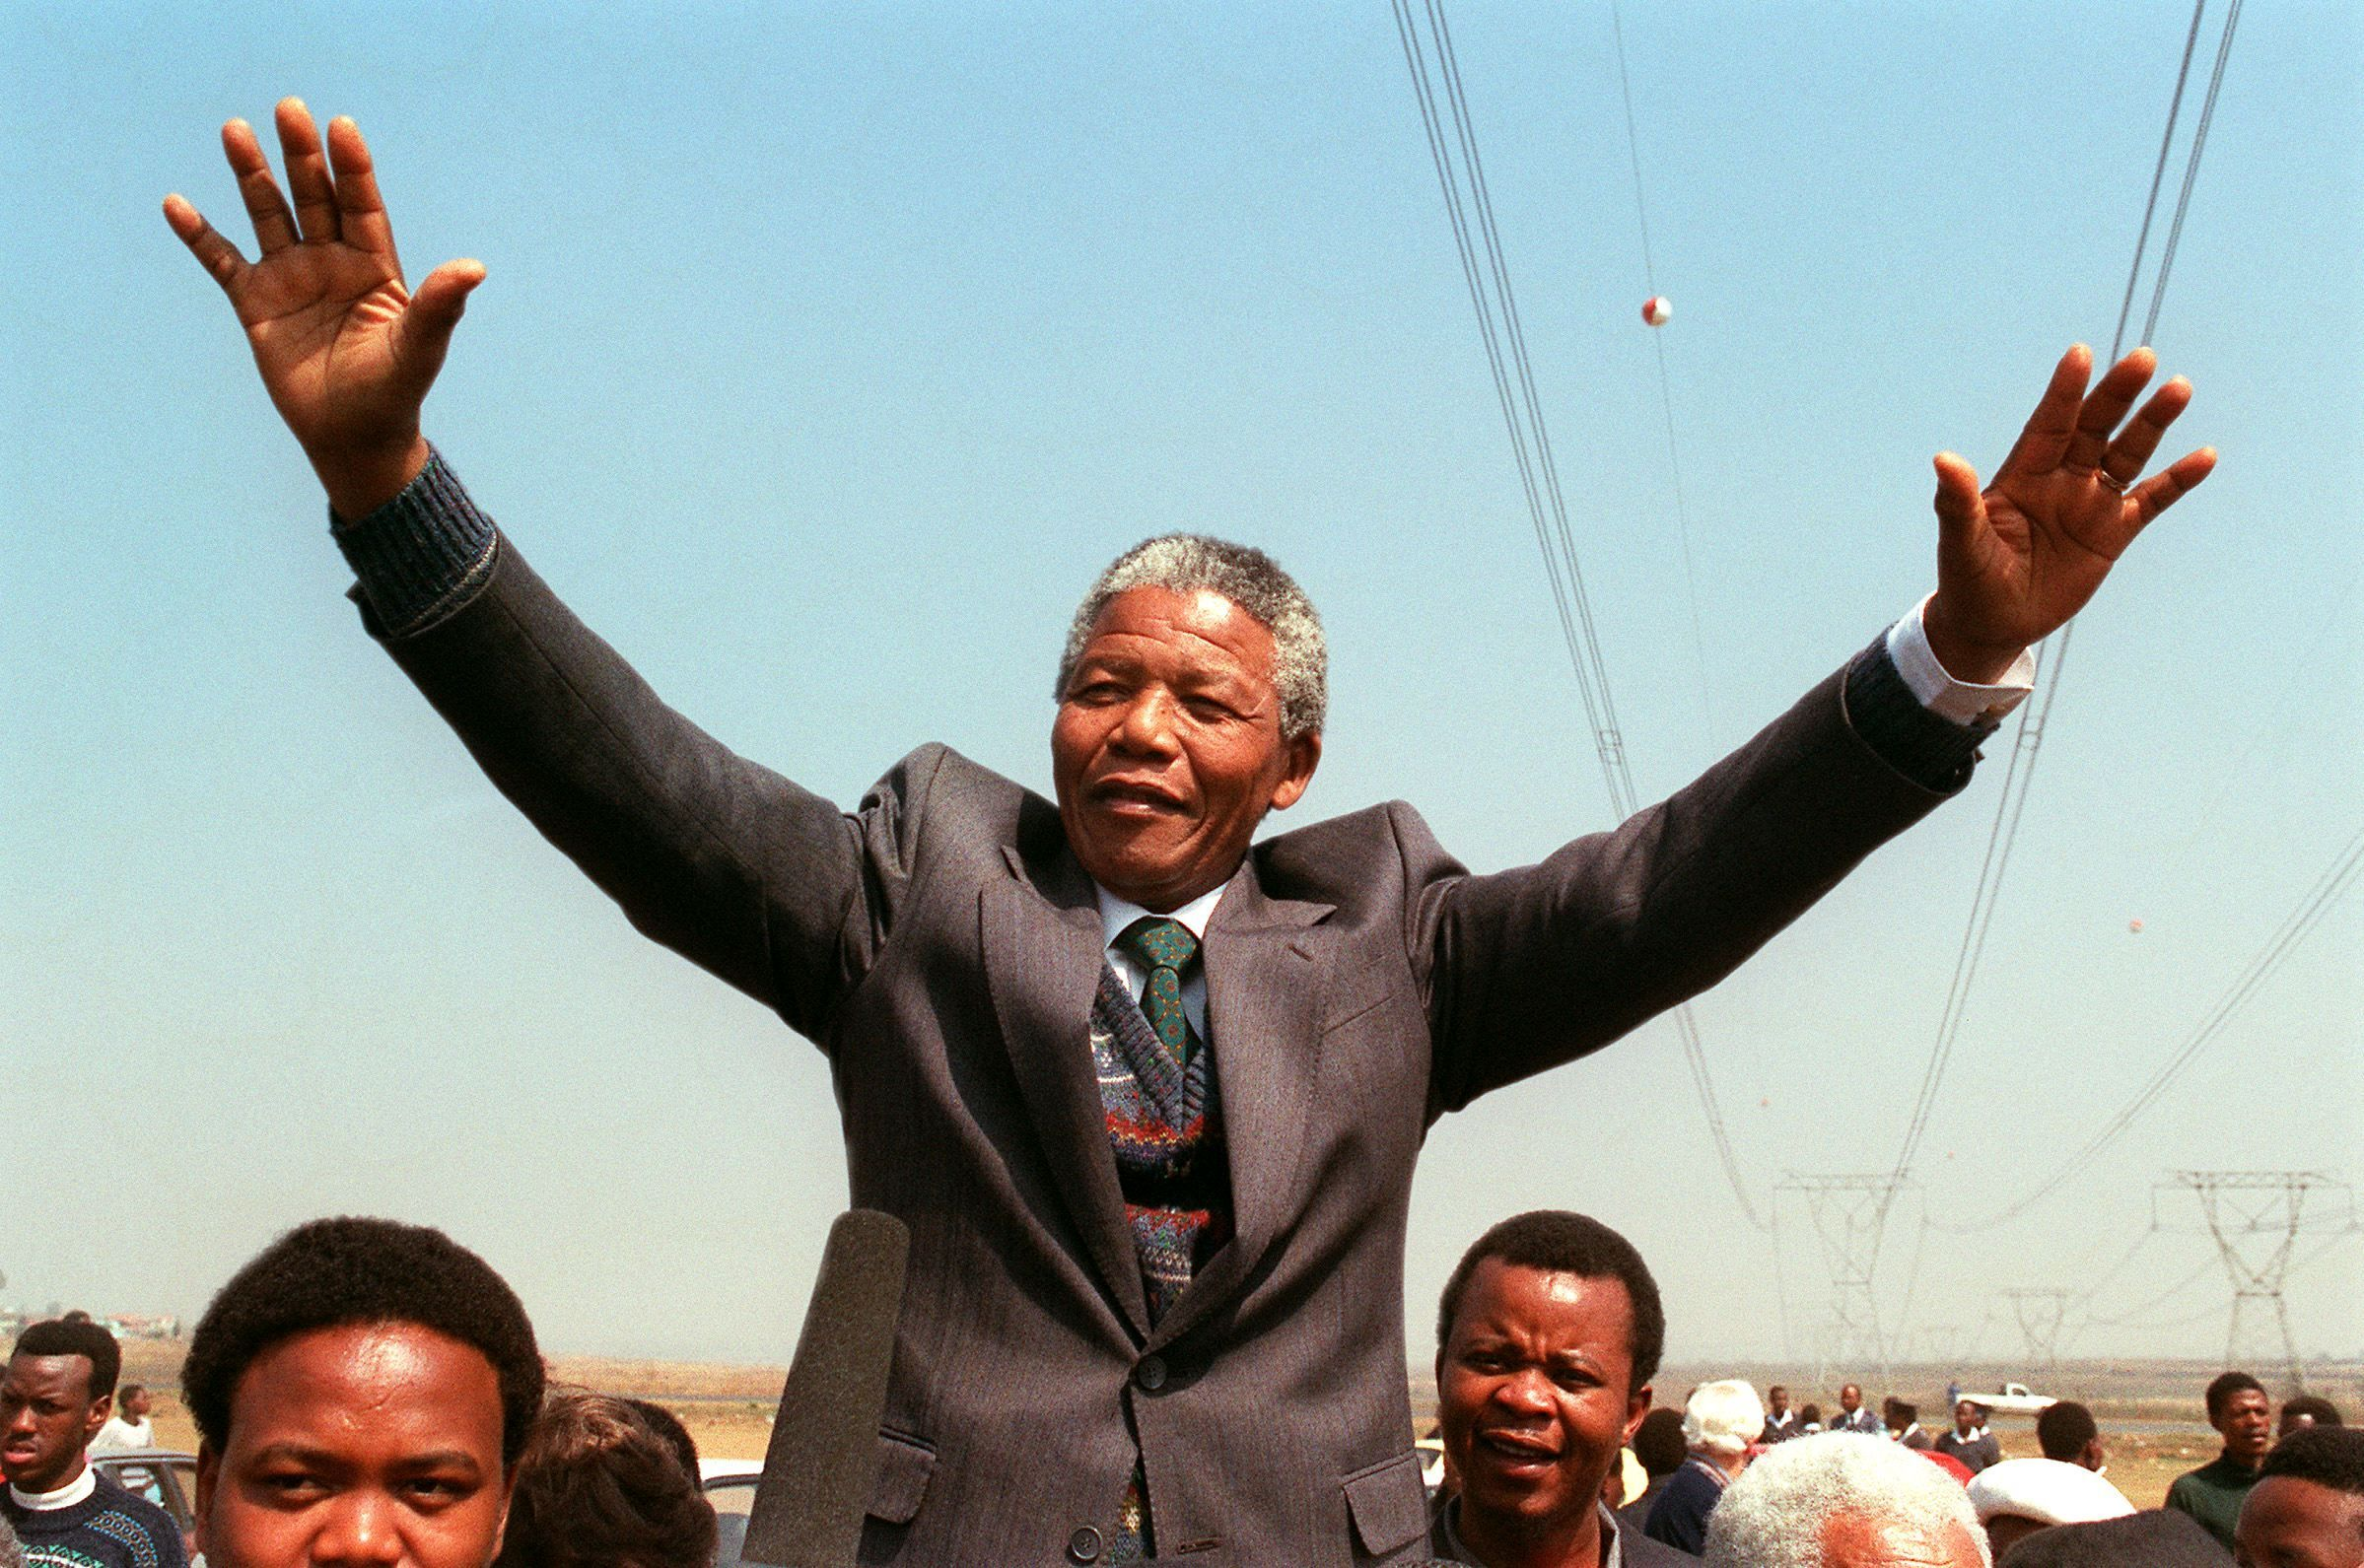 LISTEN: Two Mandela Speeches That Made History